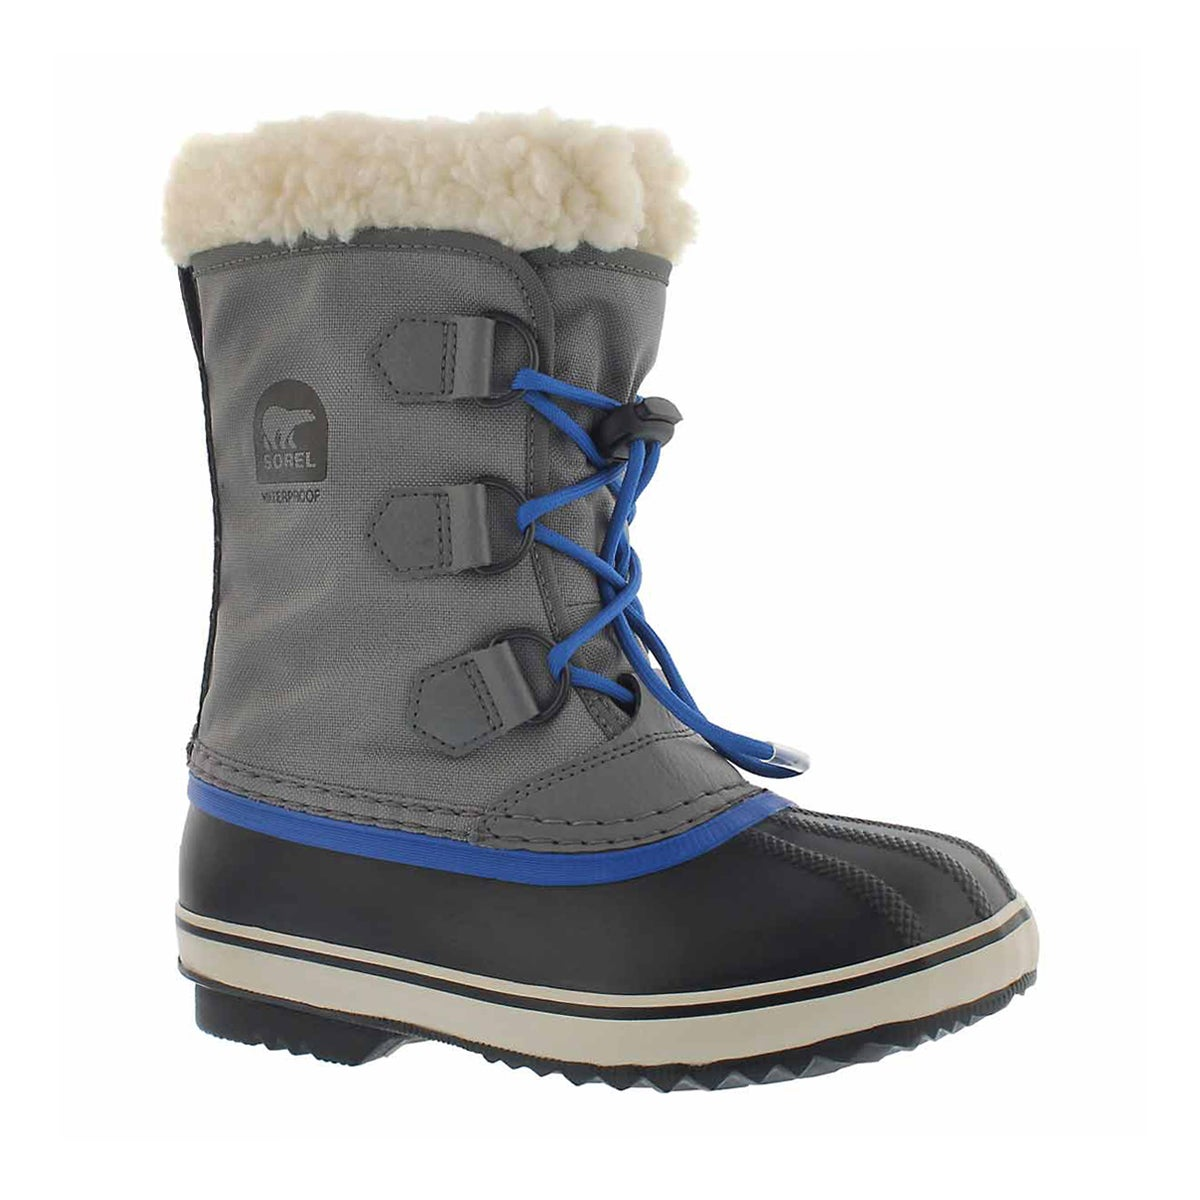 Boys' YOOT PAC NYLON grey waterproof winter boots